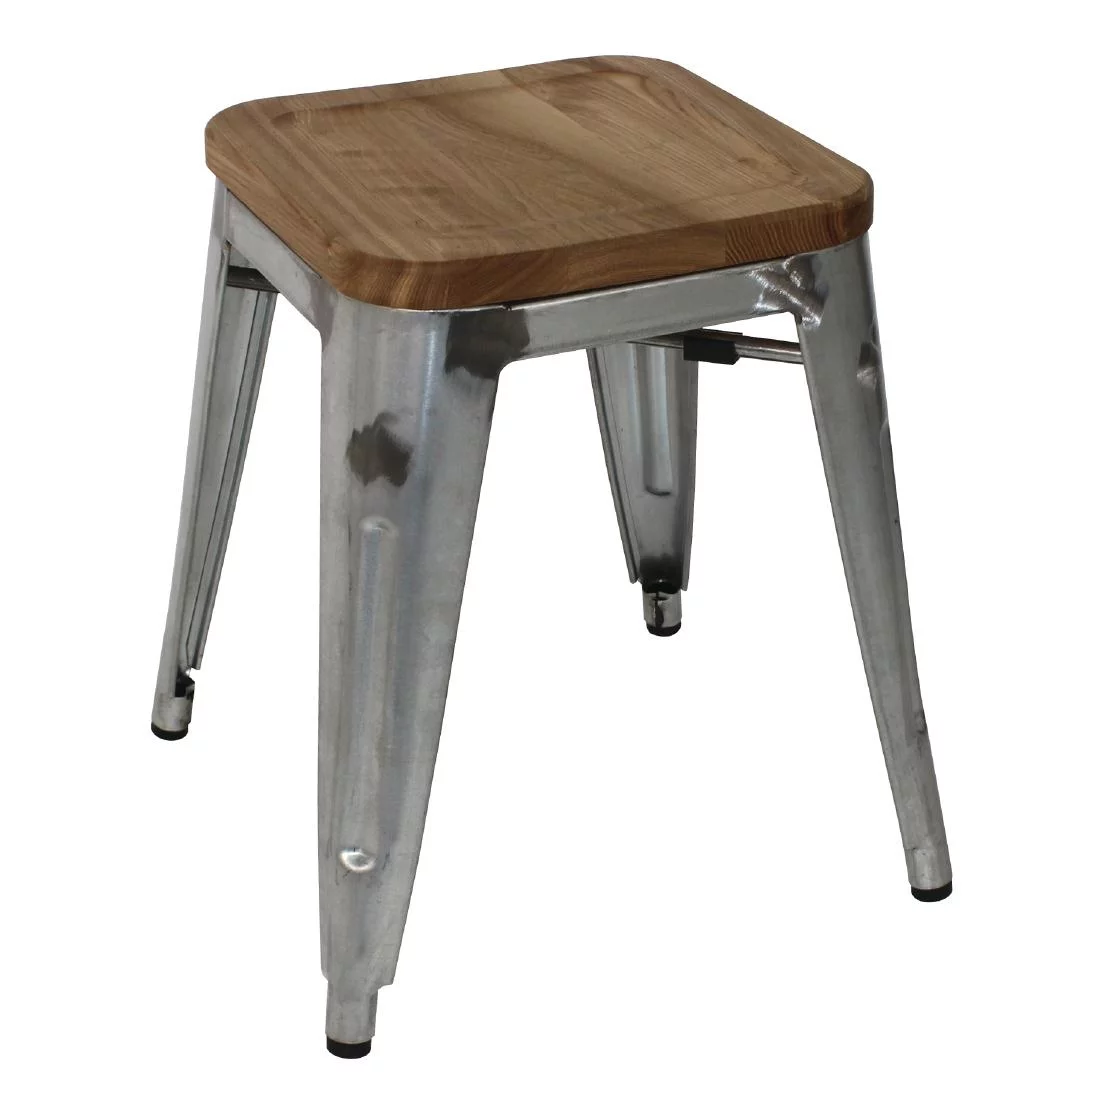 Harbour Low Stool with Timber Seat